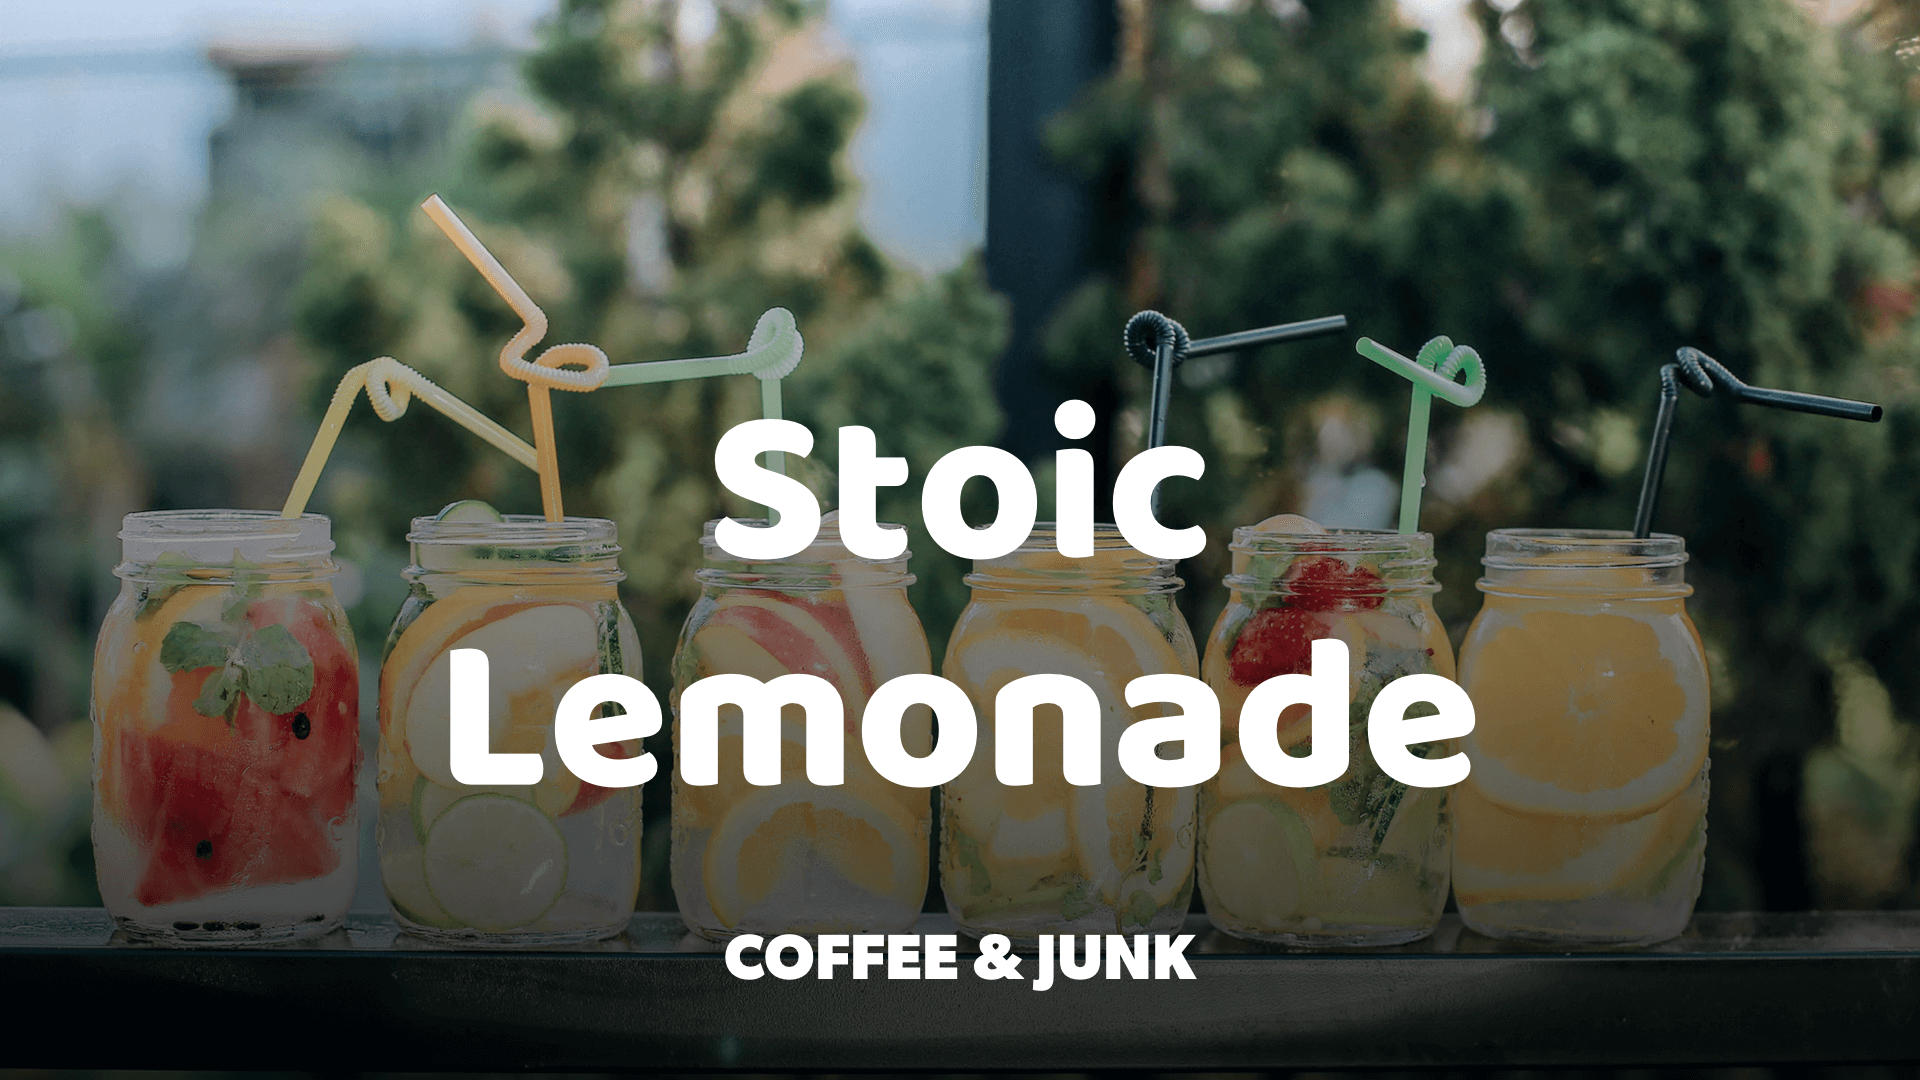 When Life Gives You Lemons, Make a Stoic Lemonade